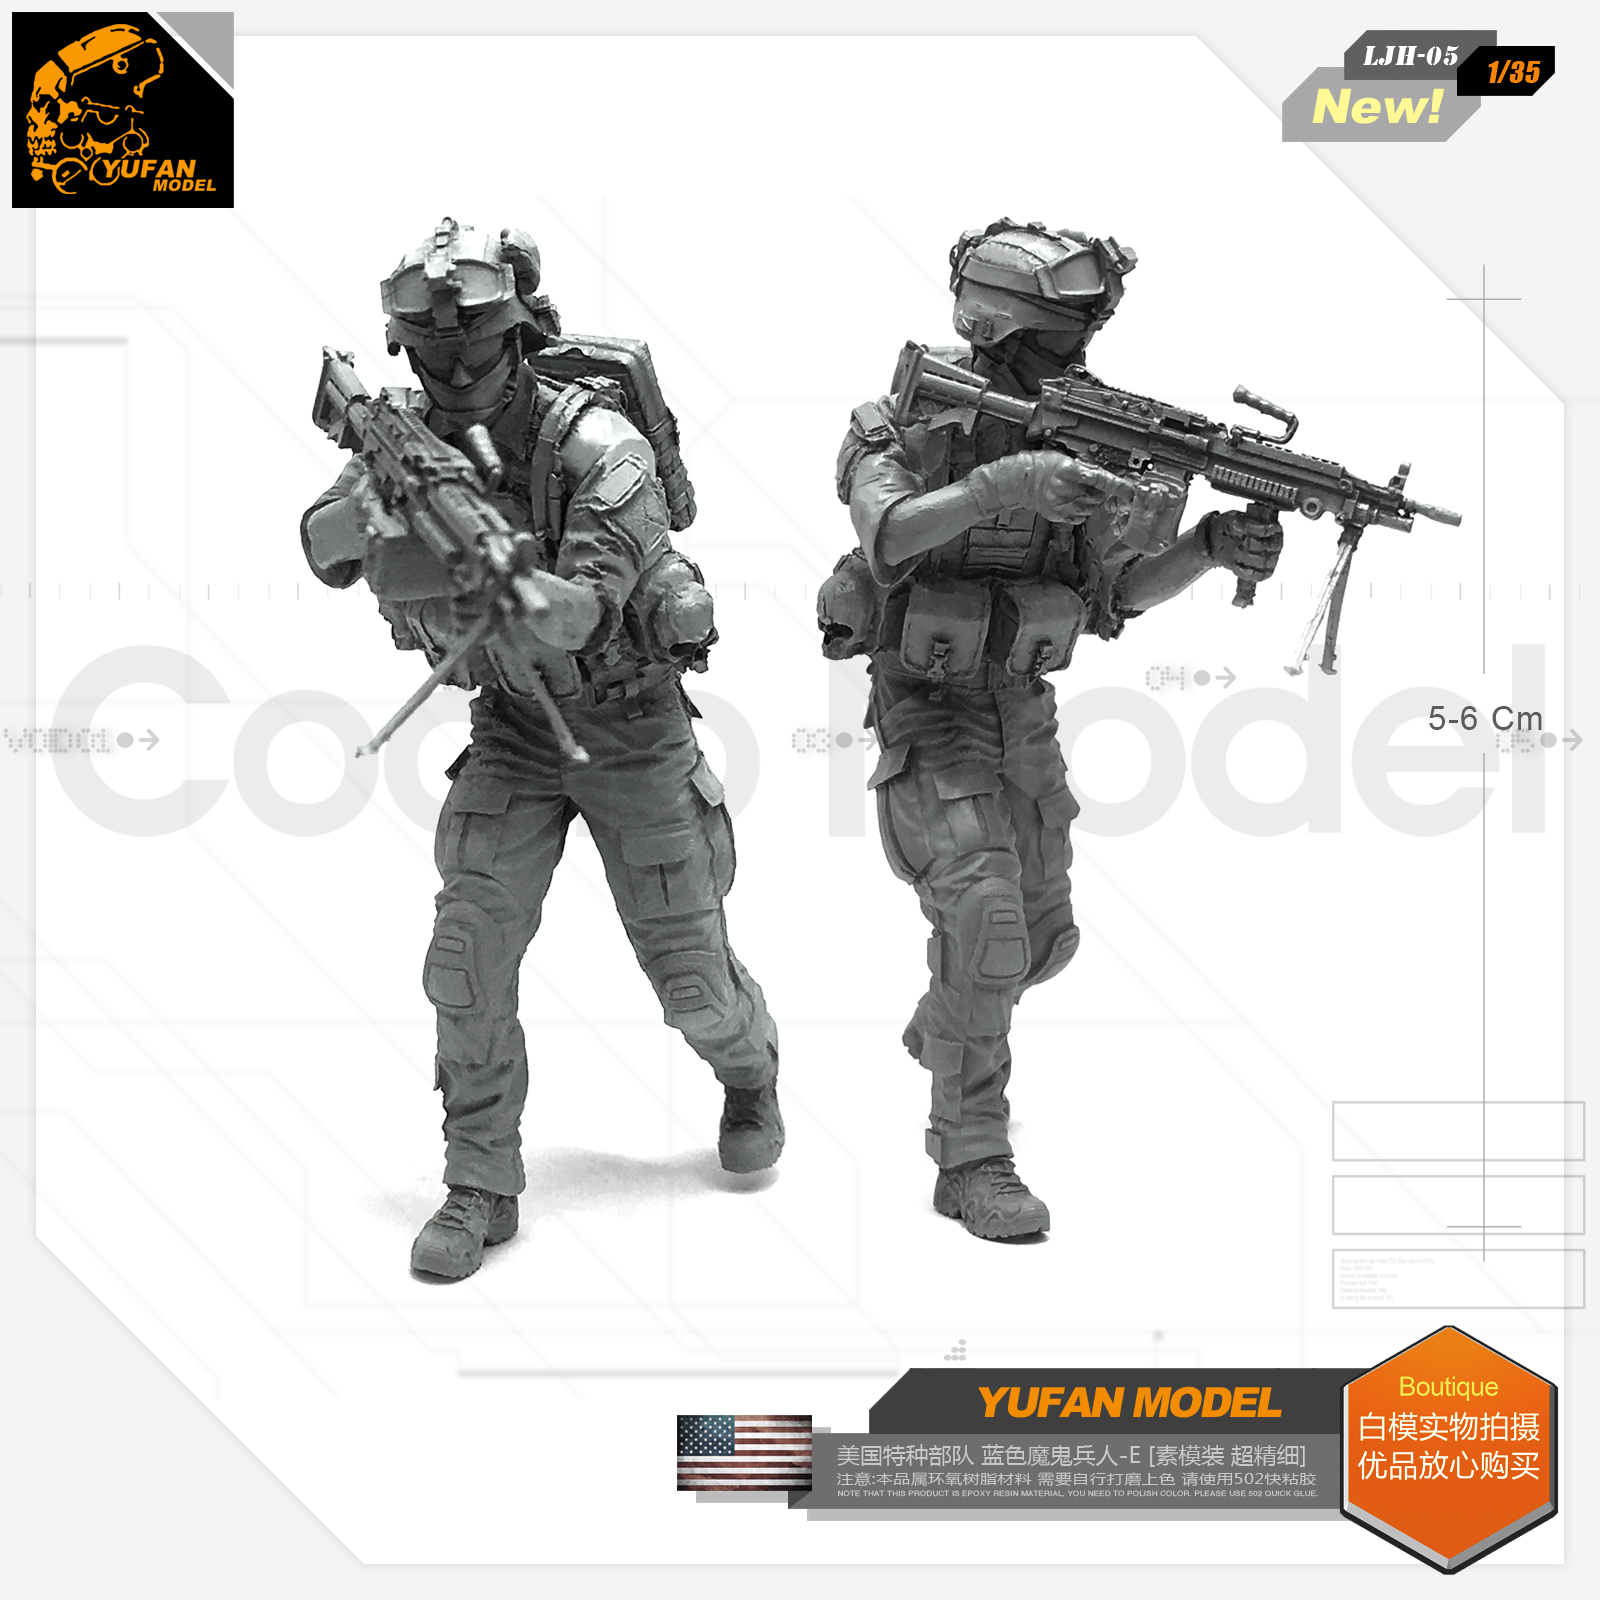 Yufan Model 1/35 Figure  Resin Soldier Modern Us Army Resin Model Devil Series LJH-05